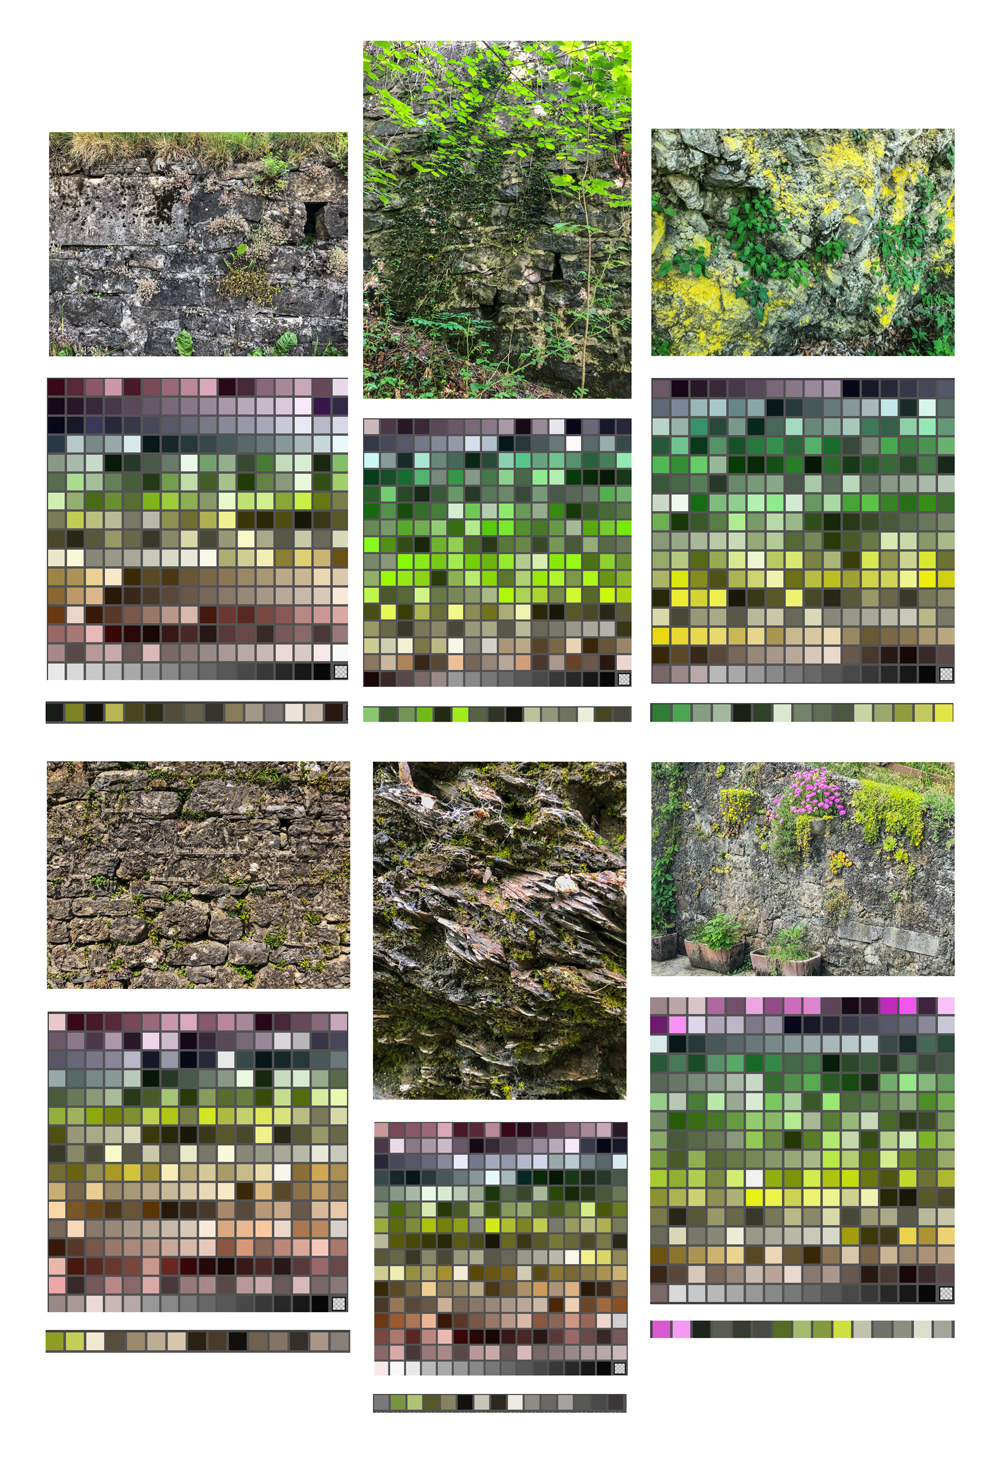 Color Palettes - Color variations were observed using both 256 and 16 colors.. From far away most of the rocks appear to be brown, but brown hues are just a piece of the rock walls' color palette.